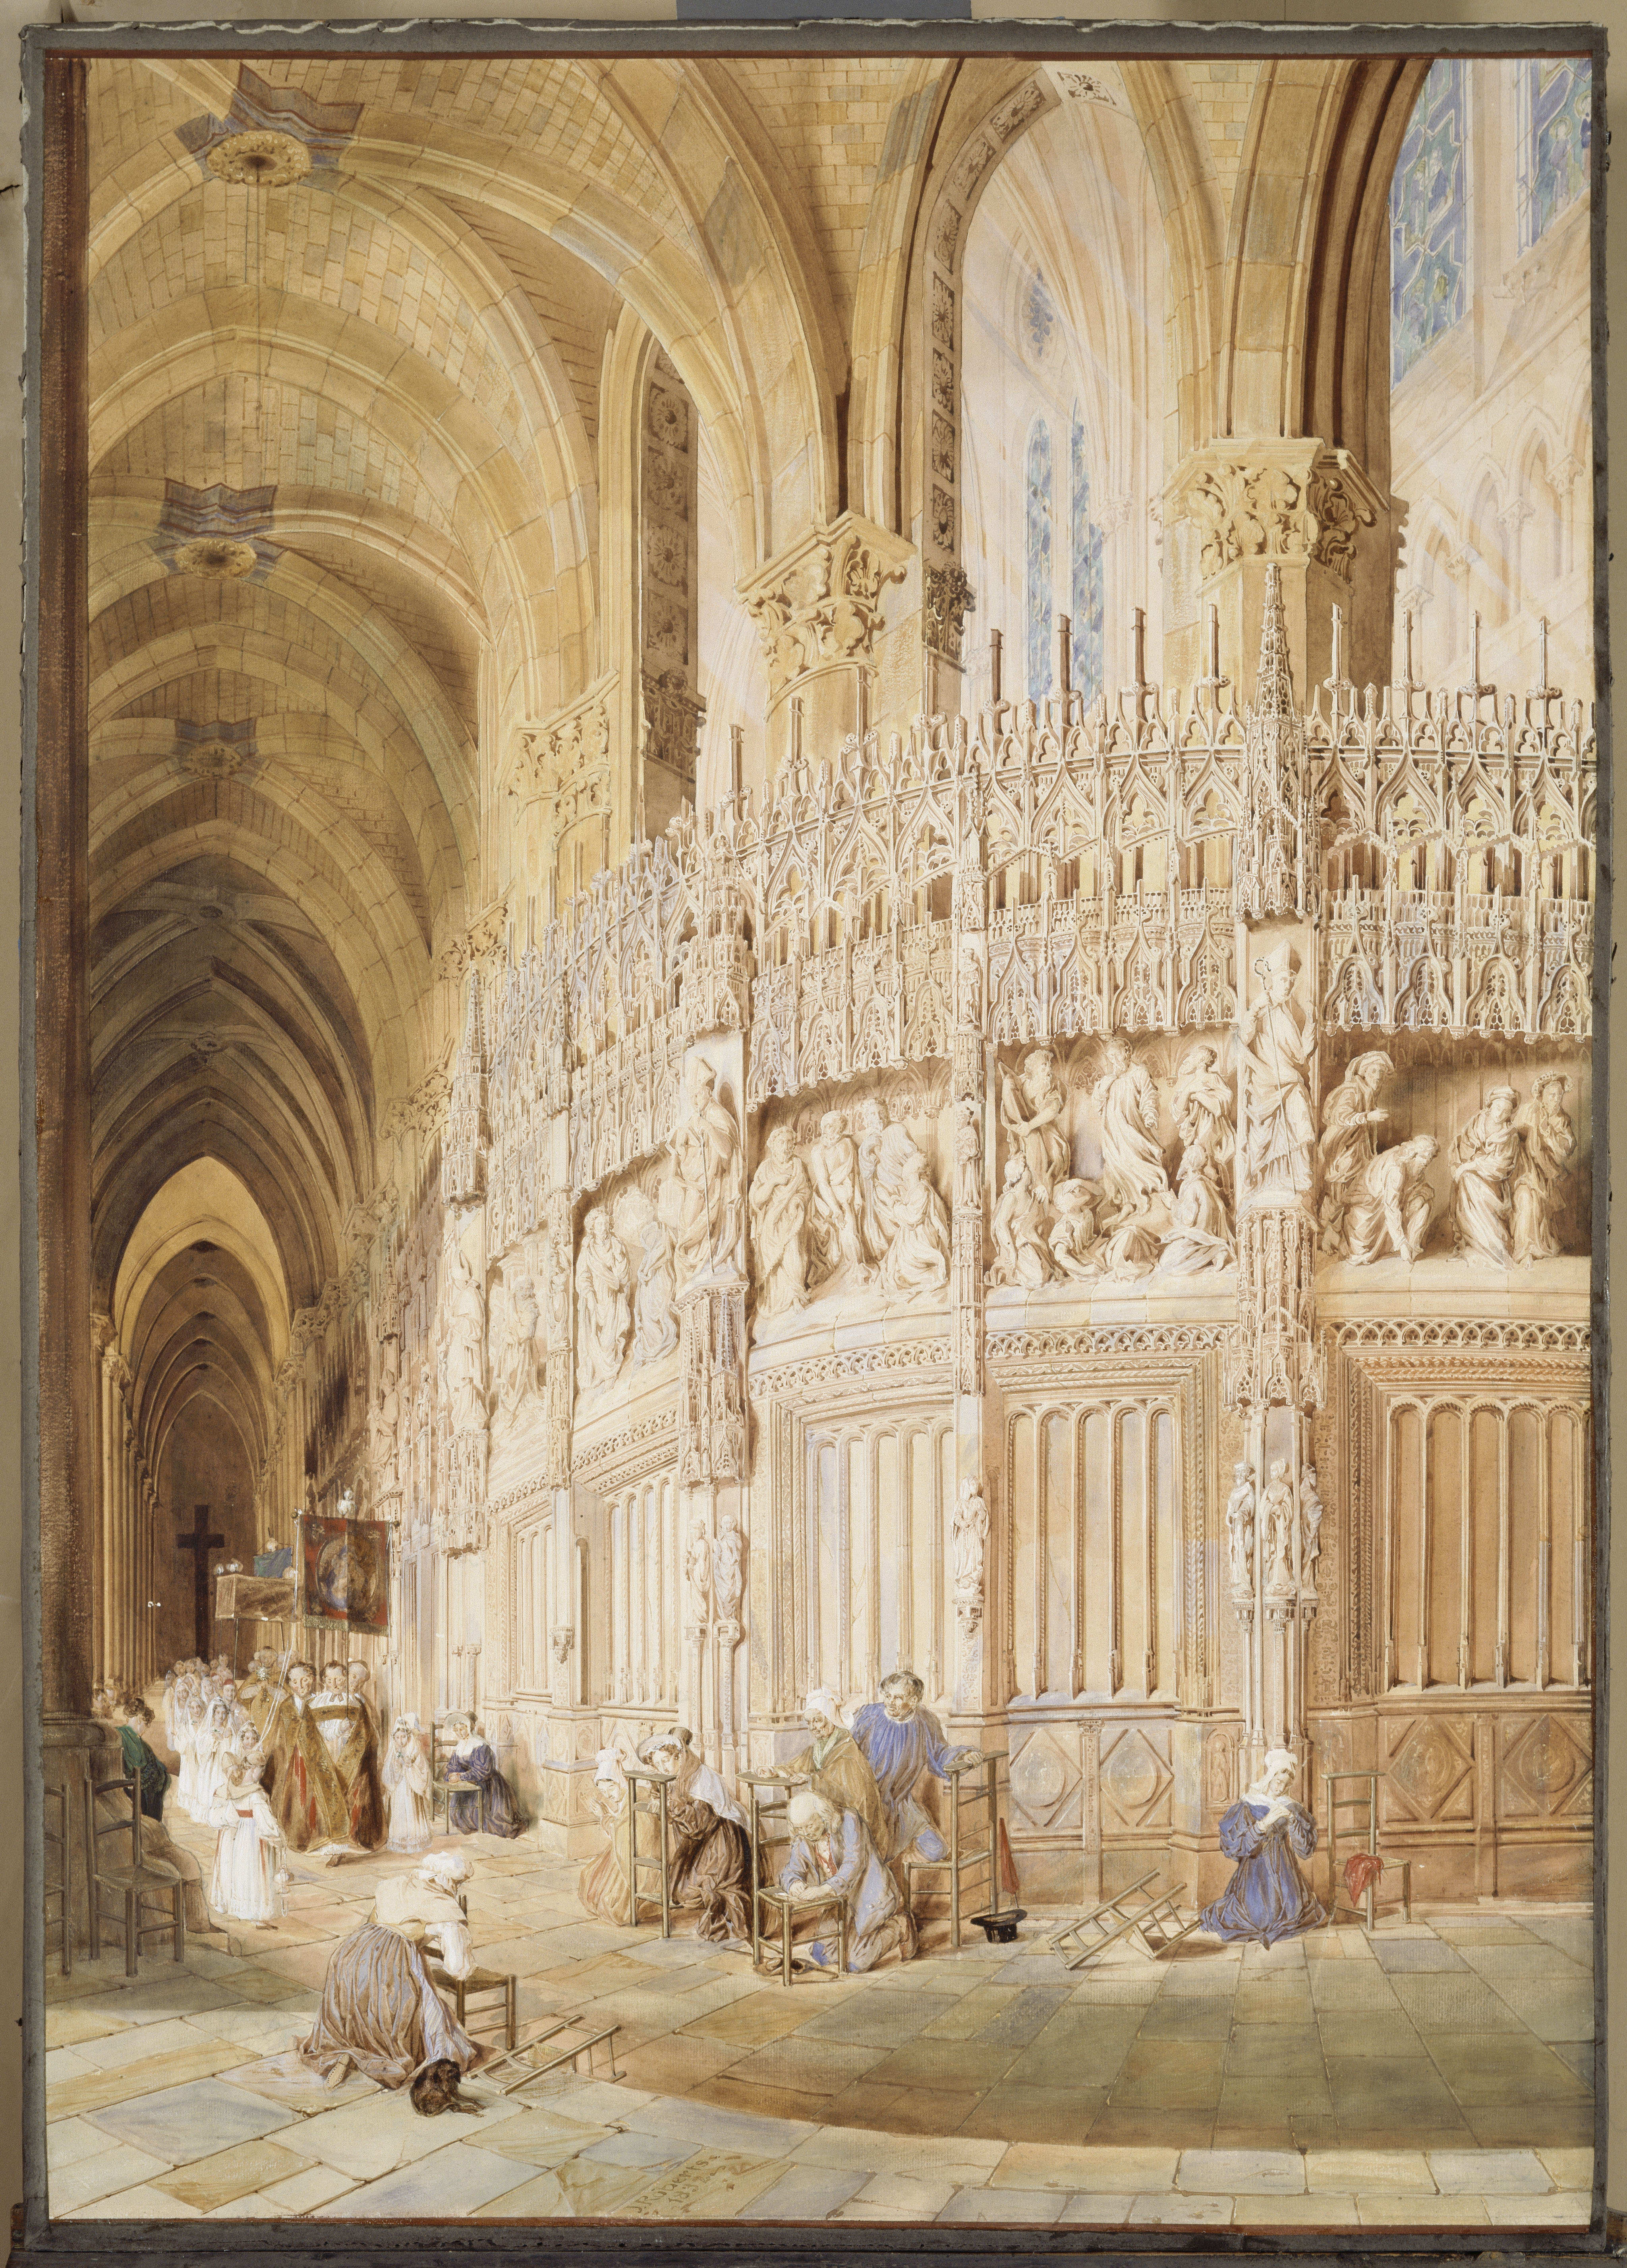 Interior of Chartres Cathedral - château de Fontainebleau - © RMN Grand Palais